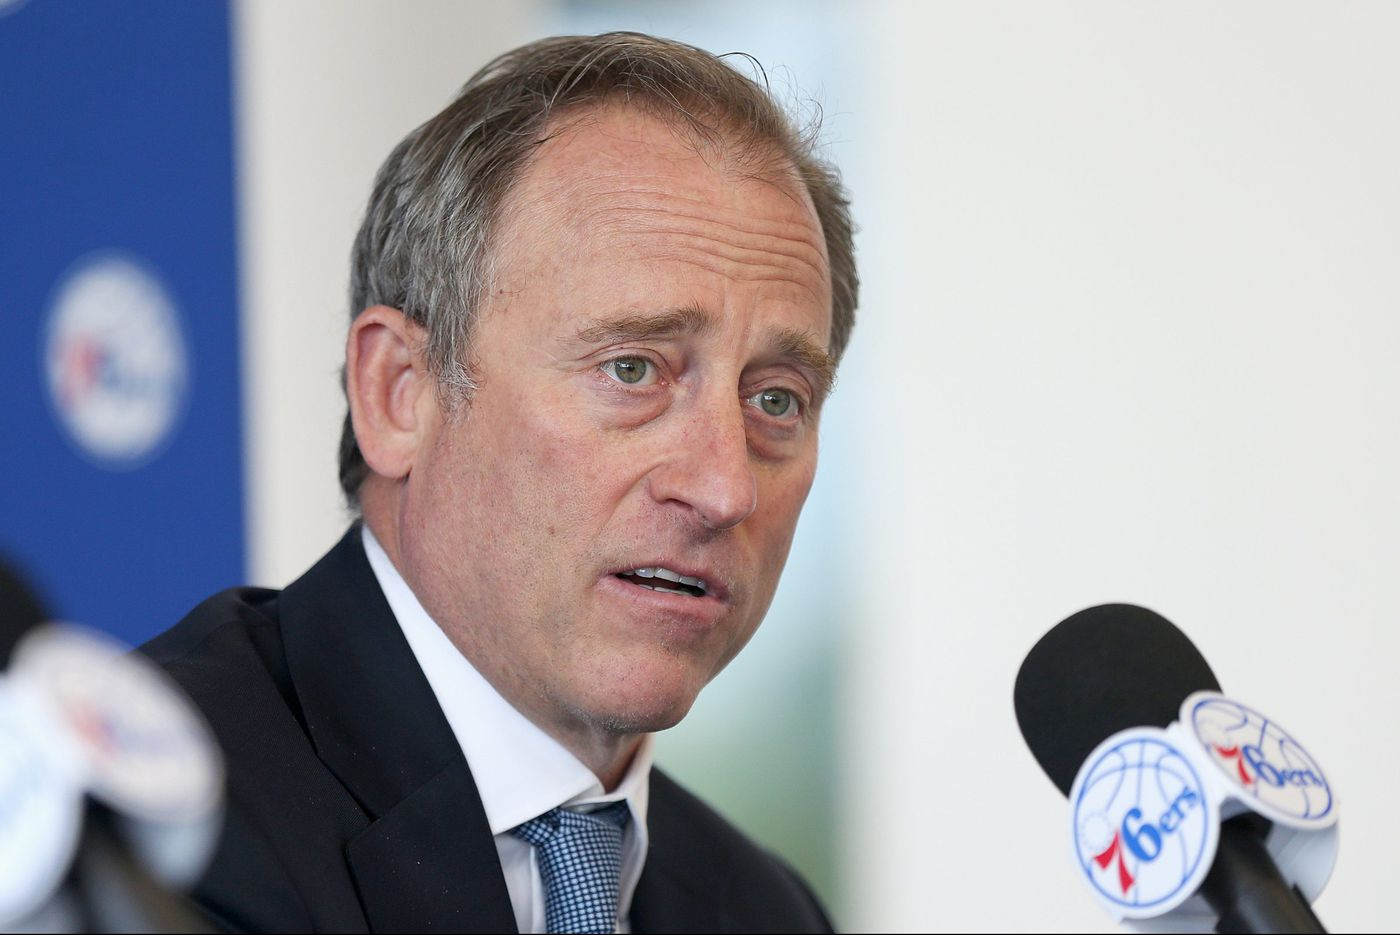 Sixers owner Josh Harris doesn't seem to know how to run a stable franchise | Mike Sielski